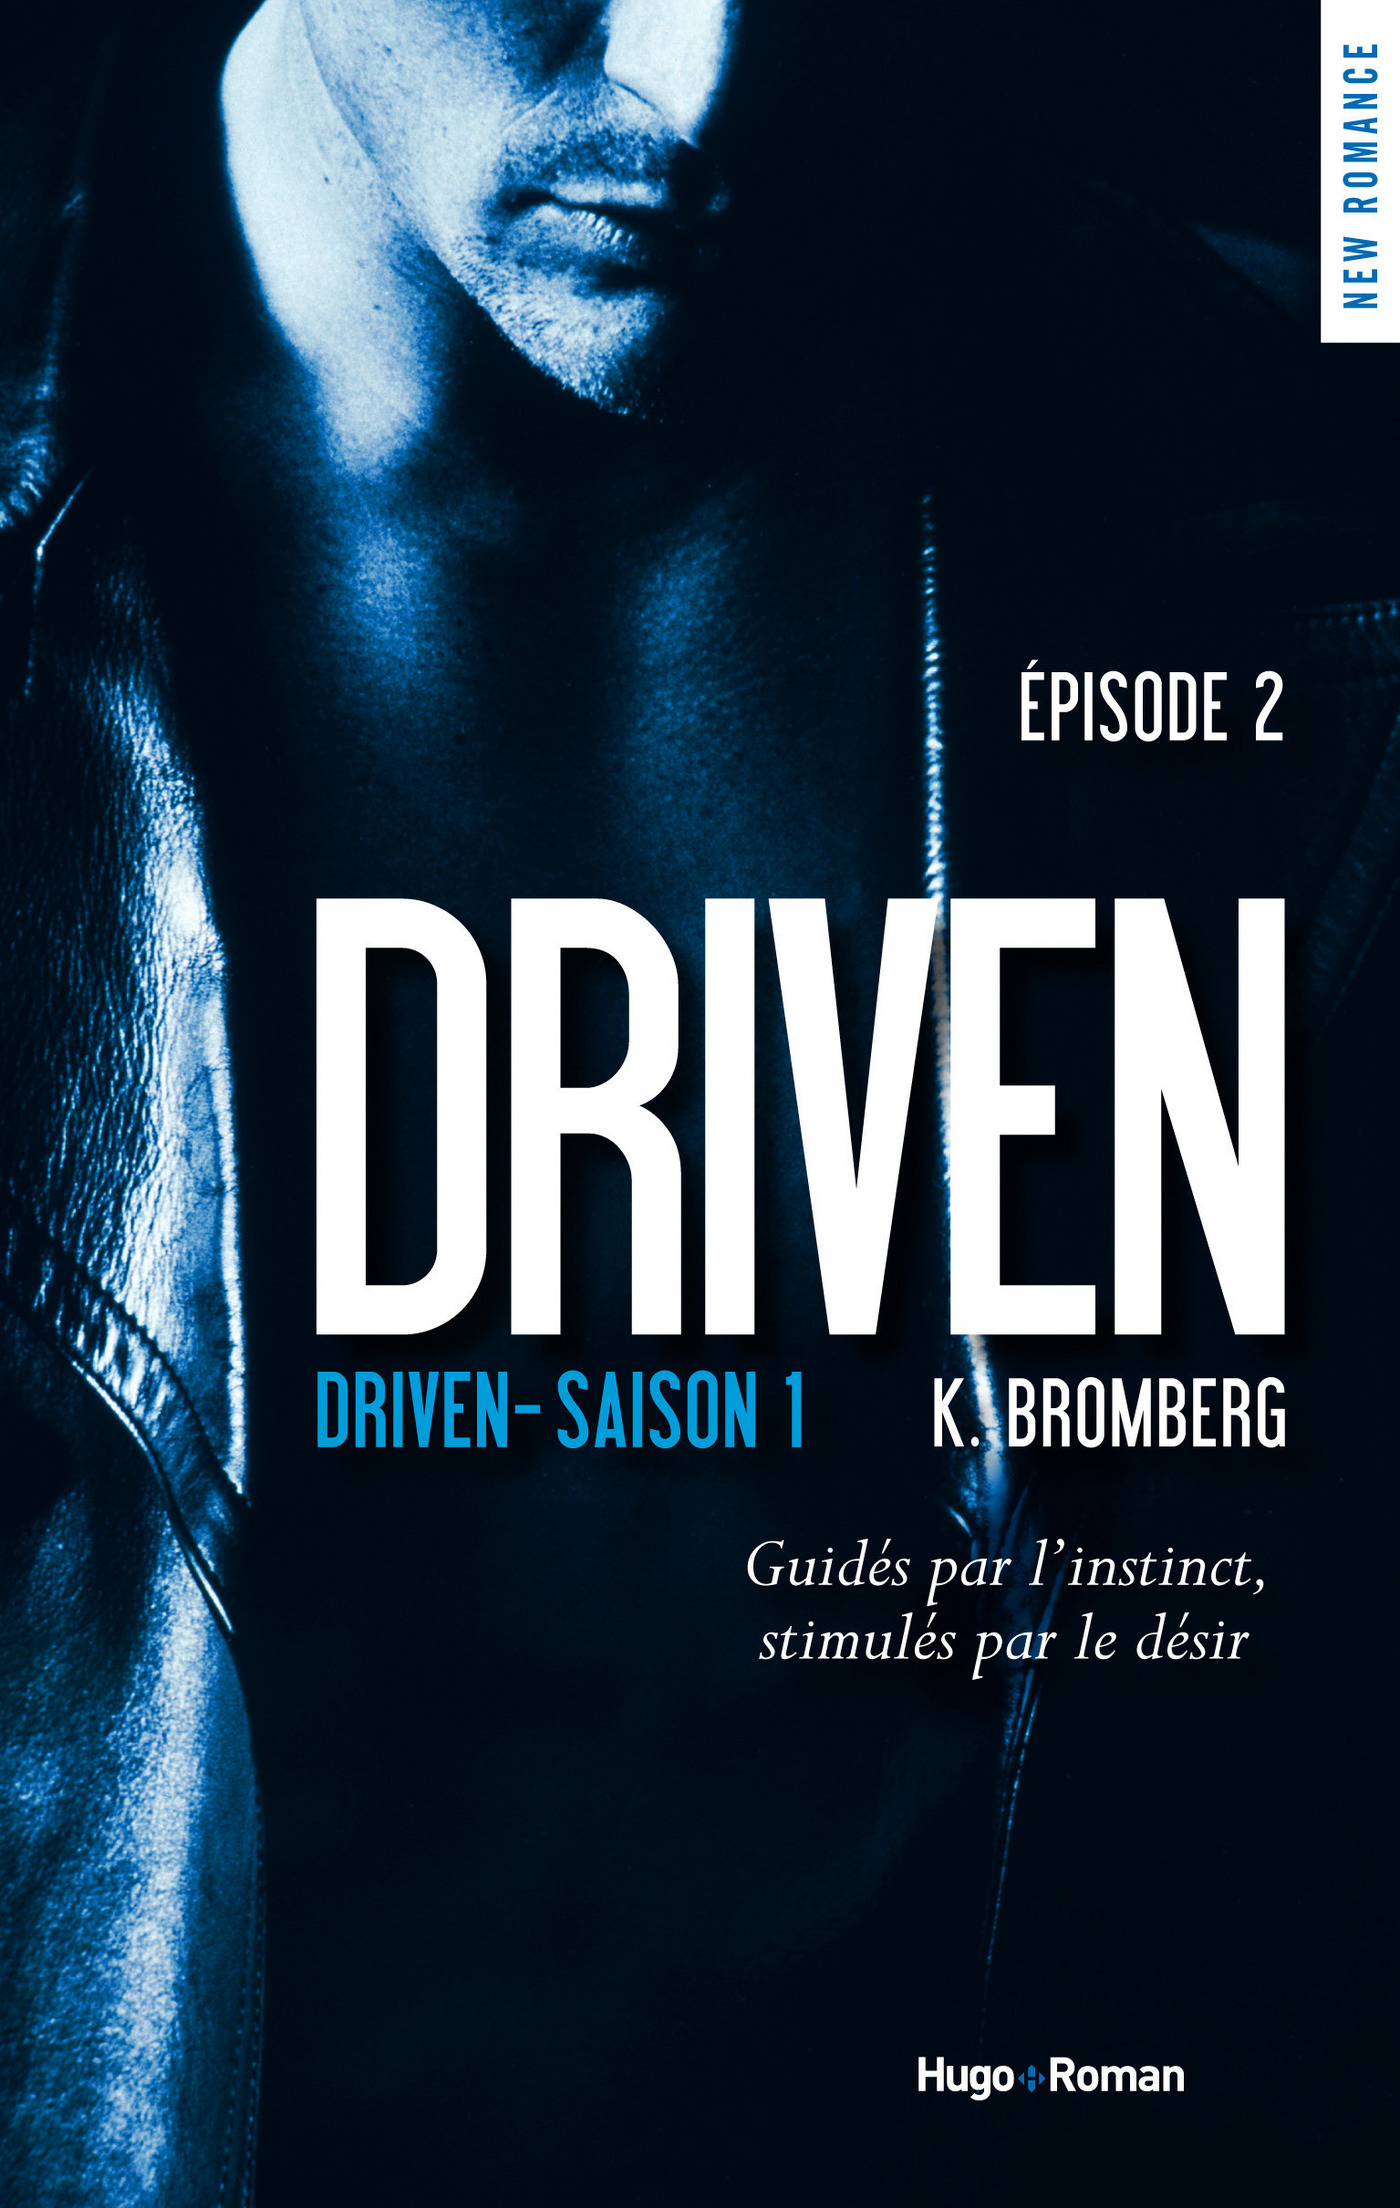 Driven Saison 1 Episode 2